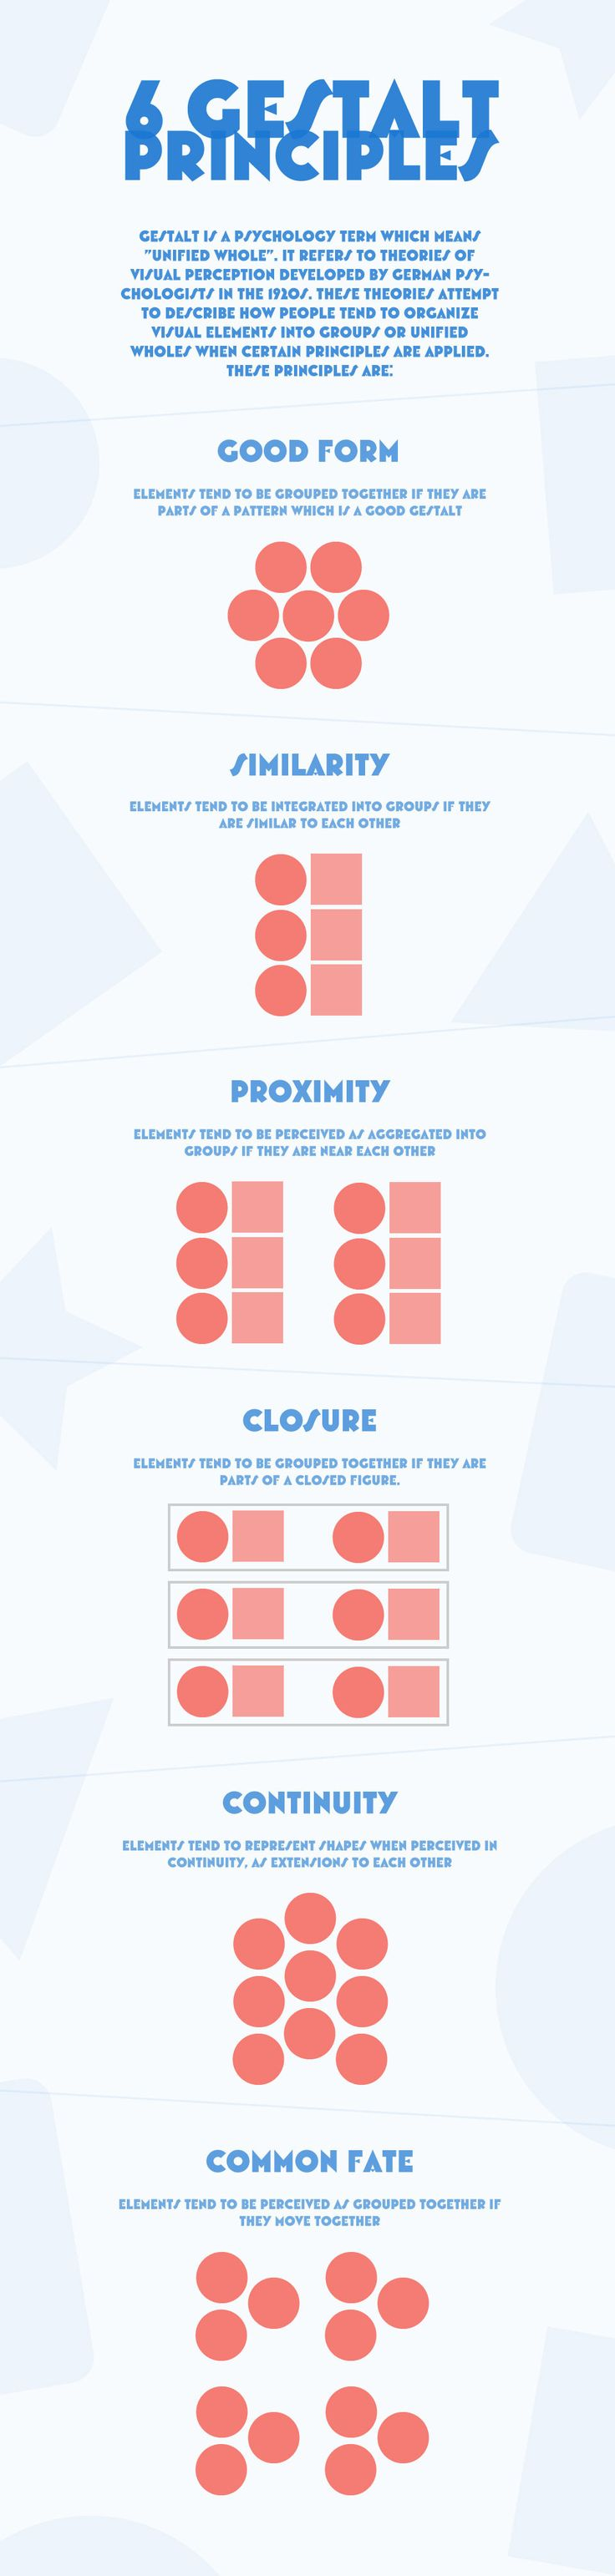 6 GESTALT PRINCIPLES on Behance | Just a little dataviz to illustrate the…